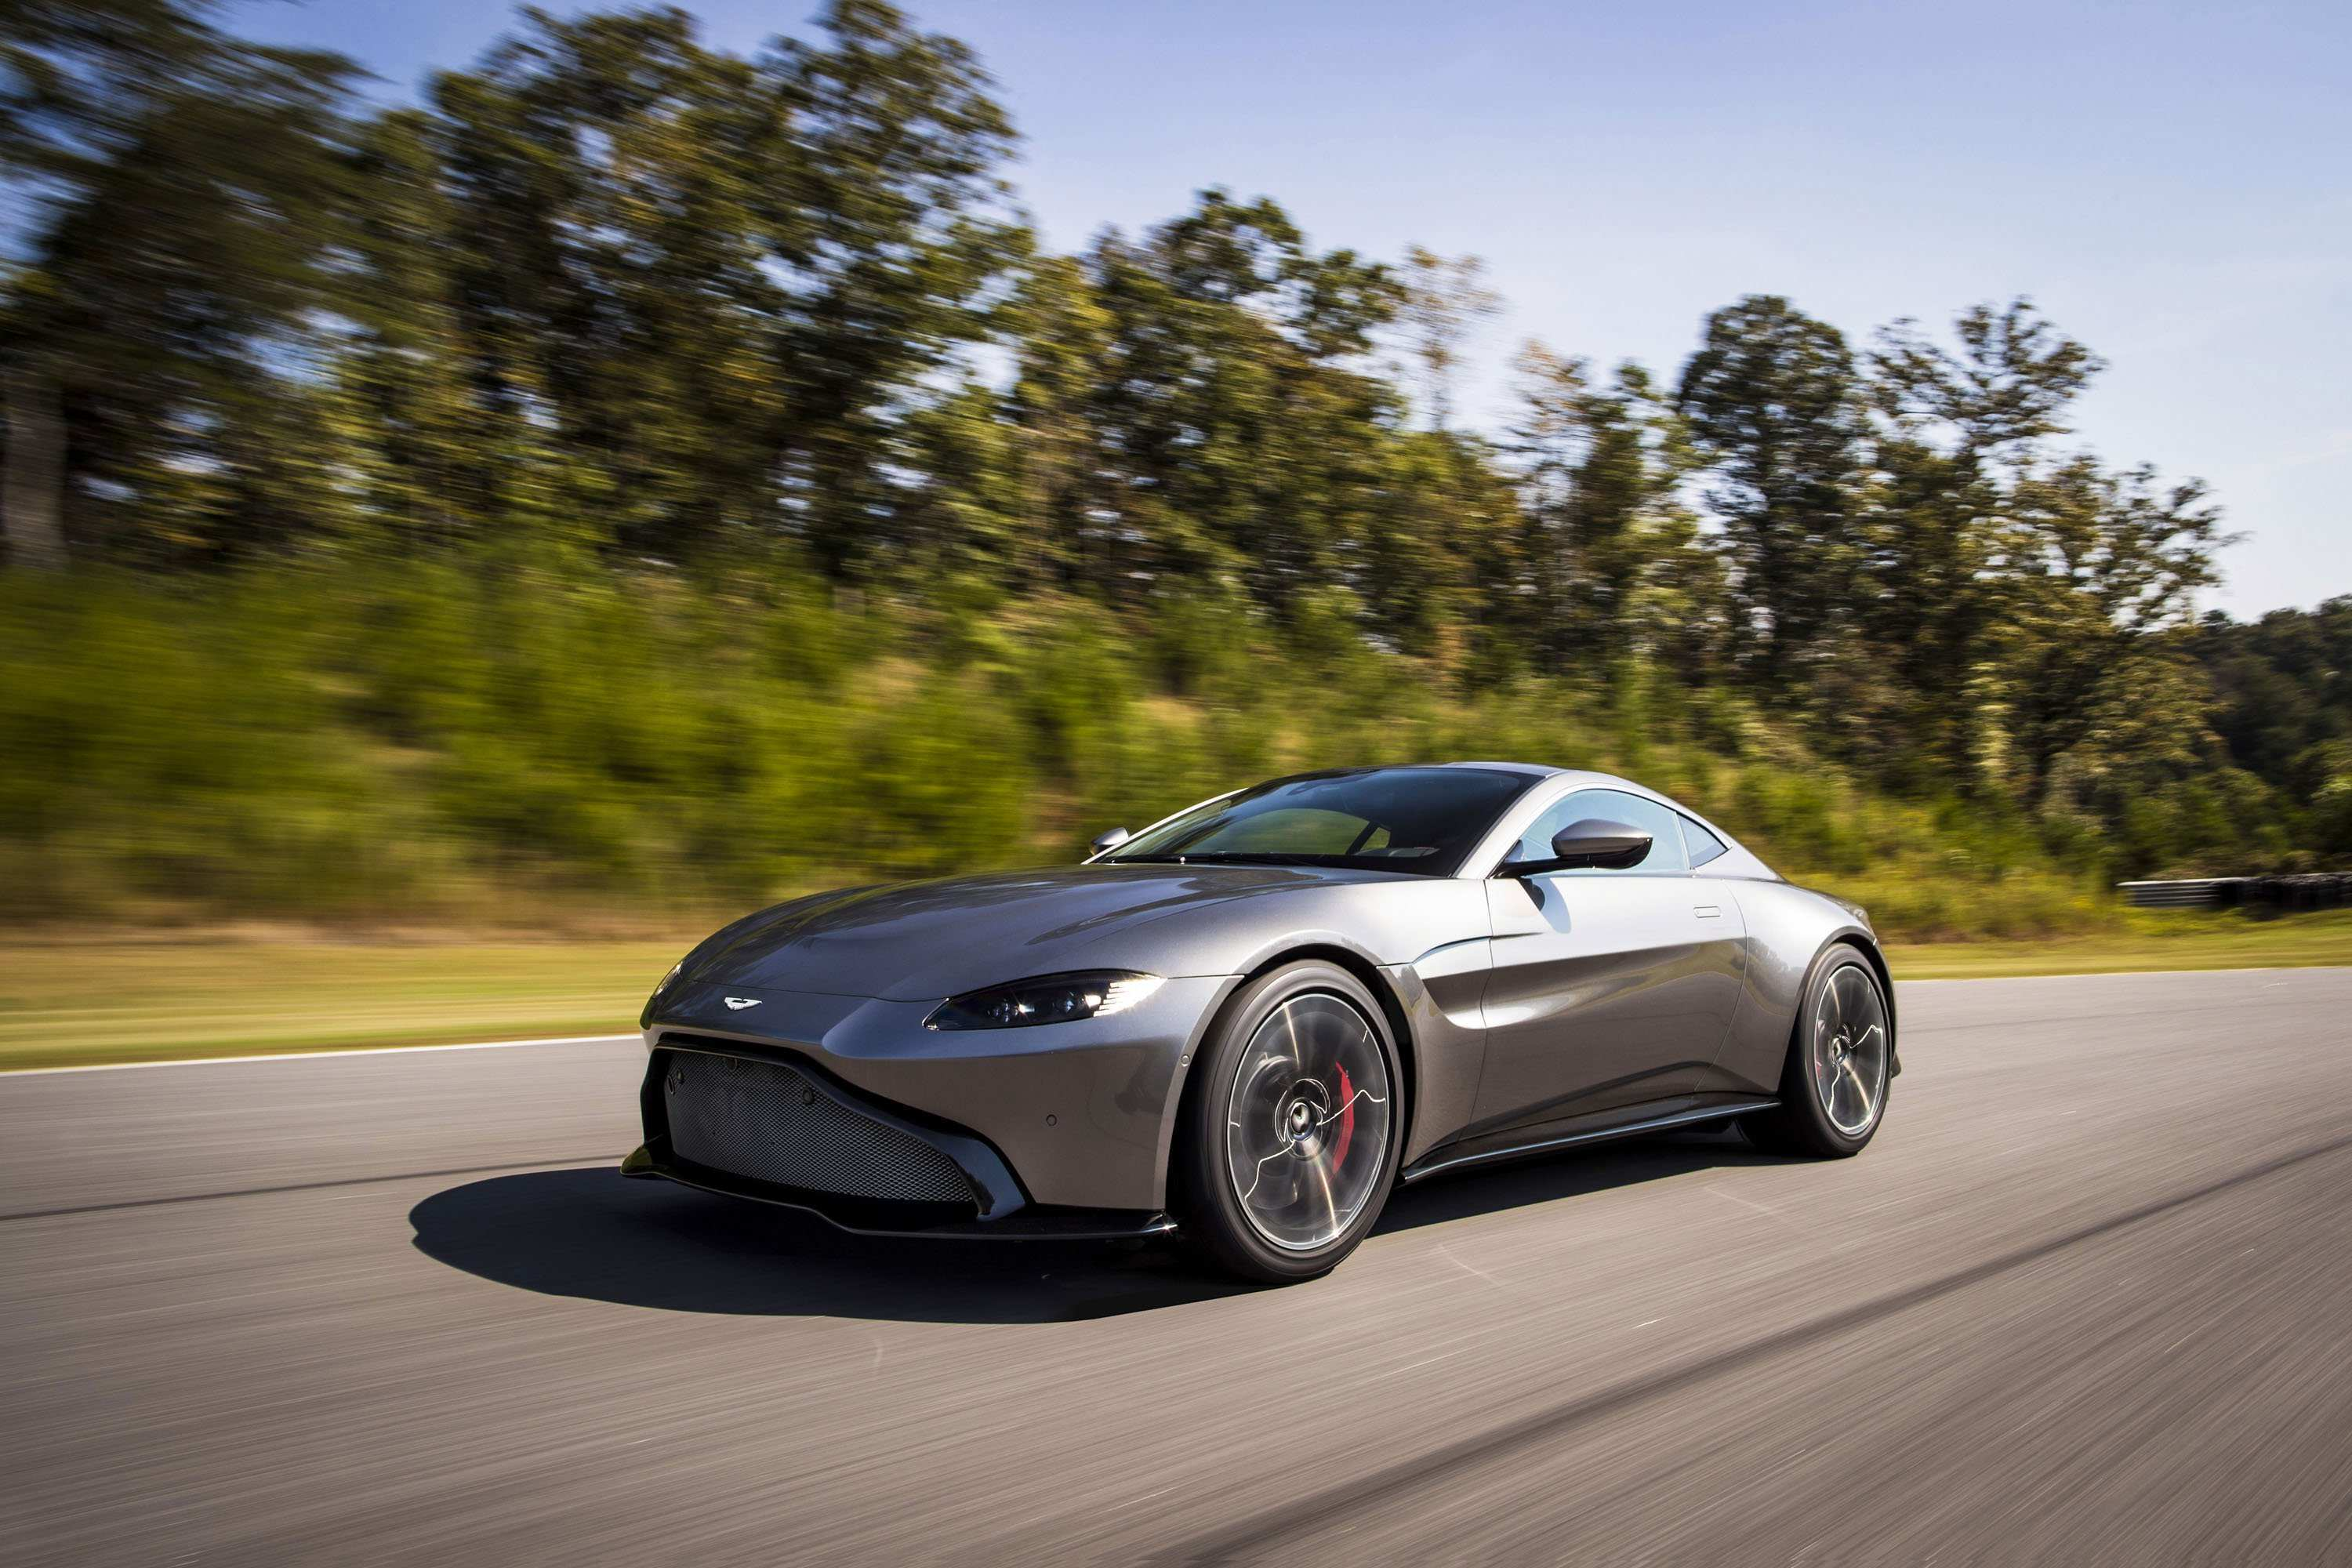 76 Great 2019 Aston Martin Vantage Predictably Stunning History for 2019 Aston Martin Vantage Predictably Stunning